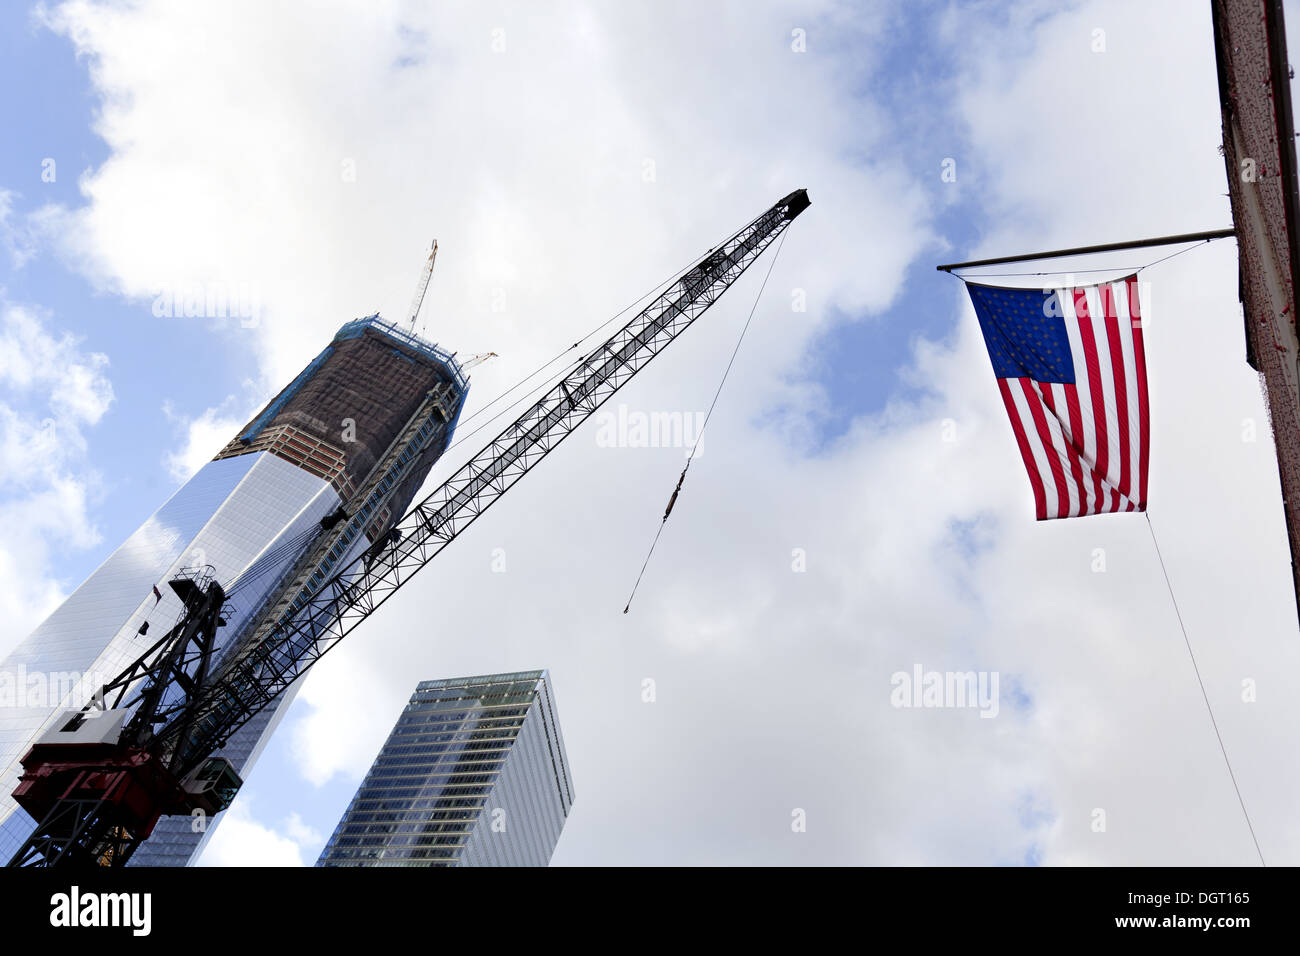 NEW YORK CITY- One World Trade Center building, still under construction and the American Flag, January 2, 2012 - Stock Image